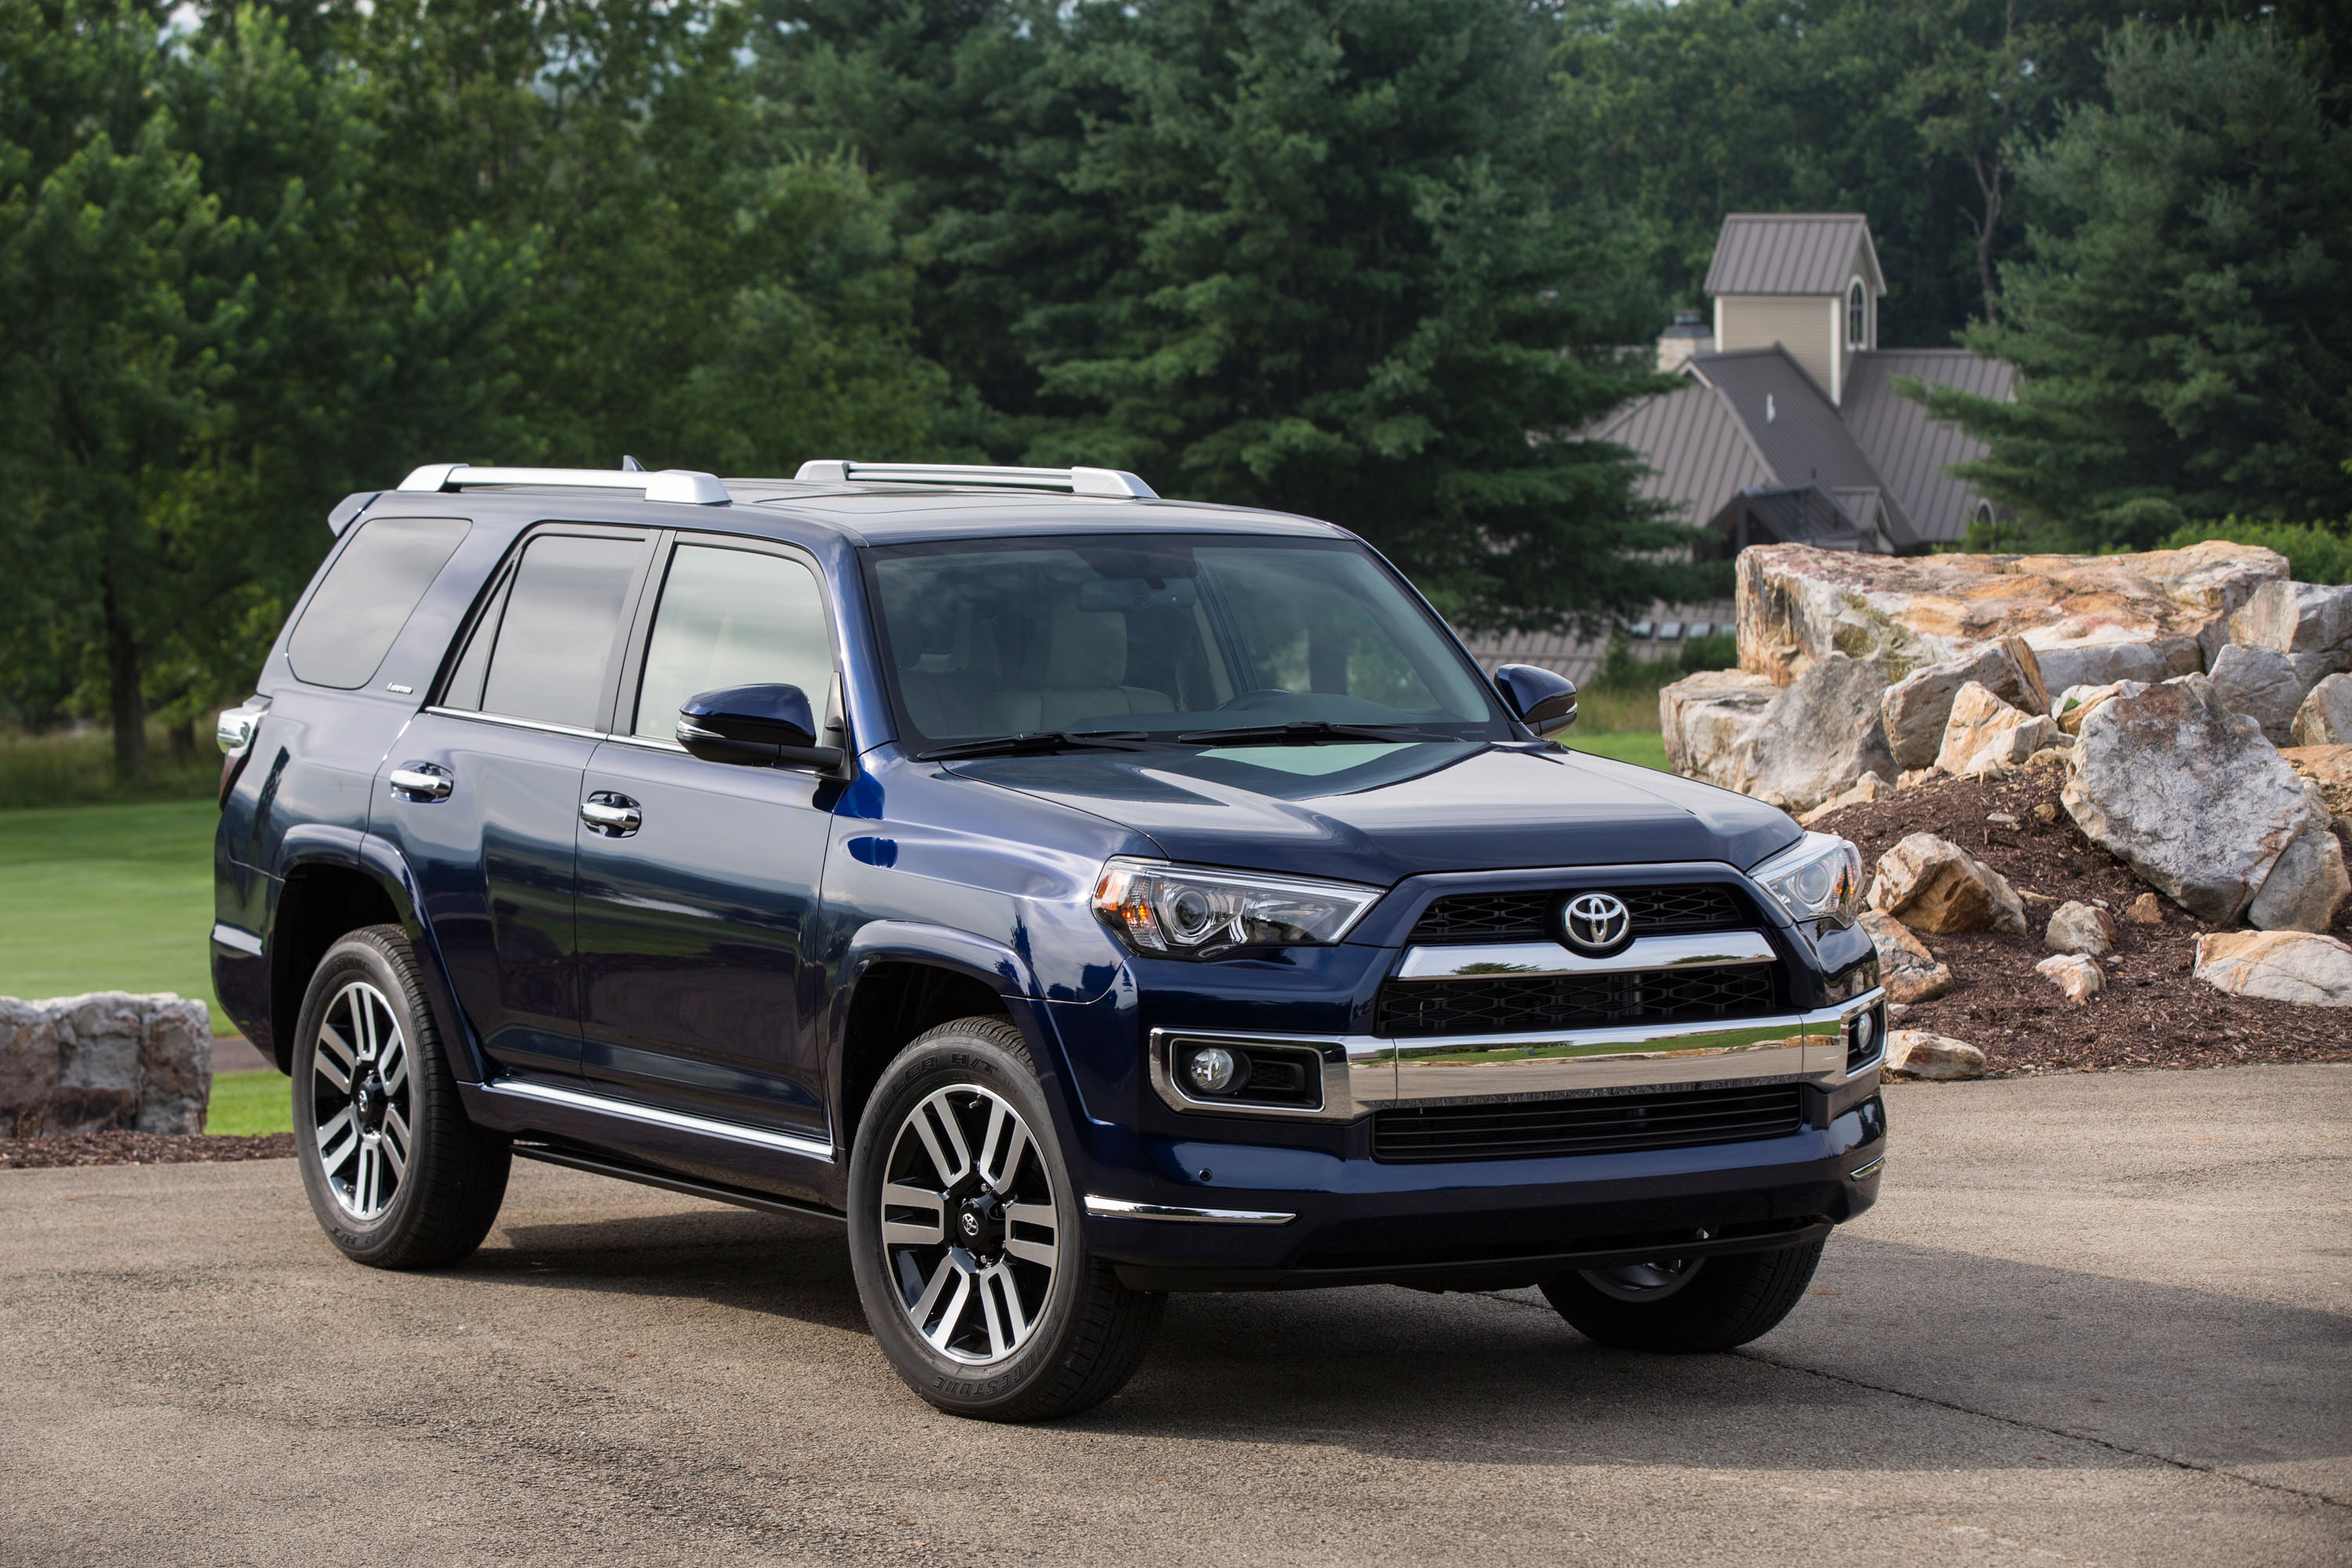 new and used toyota 4runner prices photos reviews specs the car connection. Black Bedroom Furniture Sets. Home Design Ideas